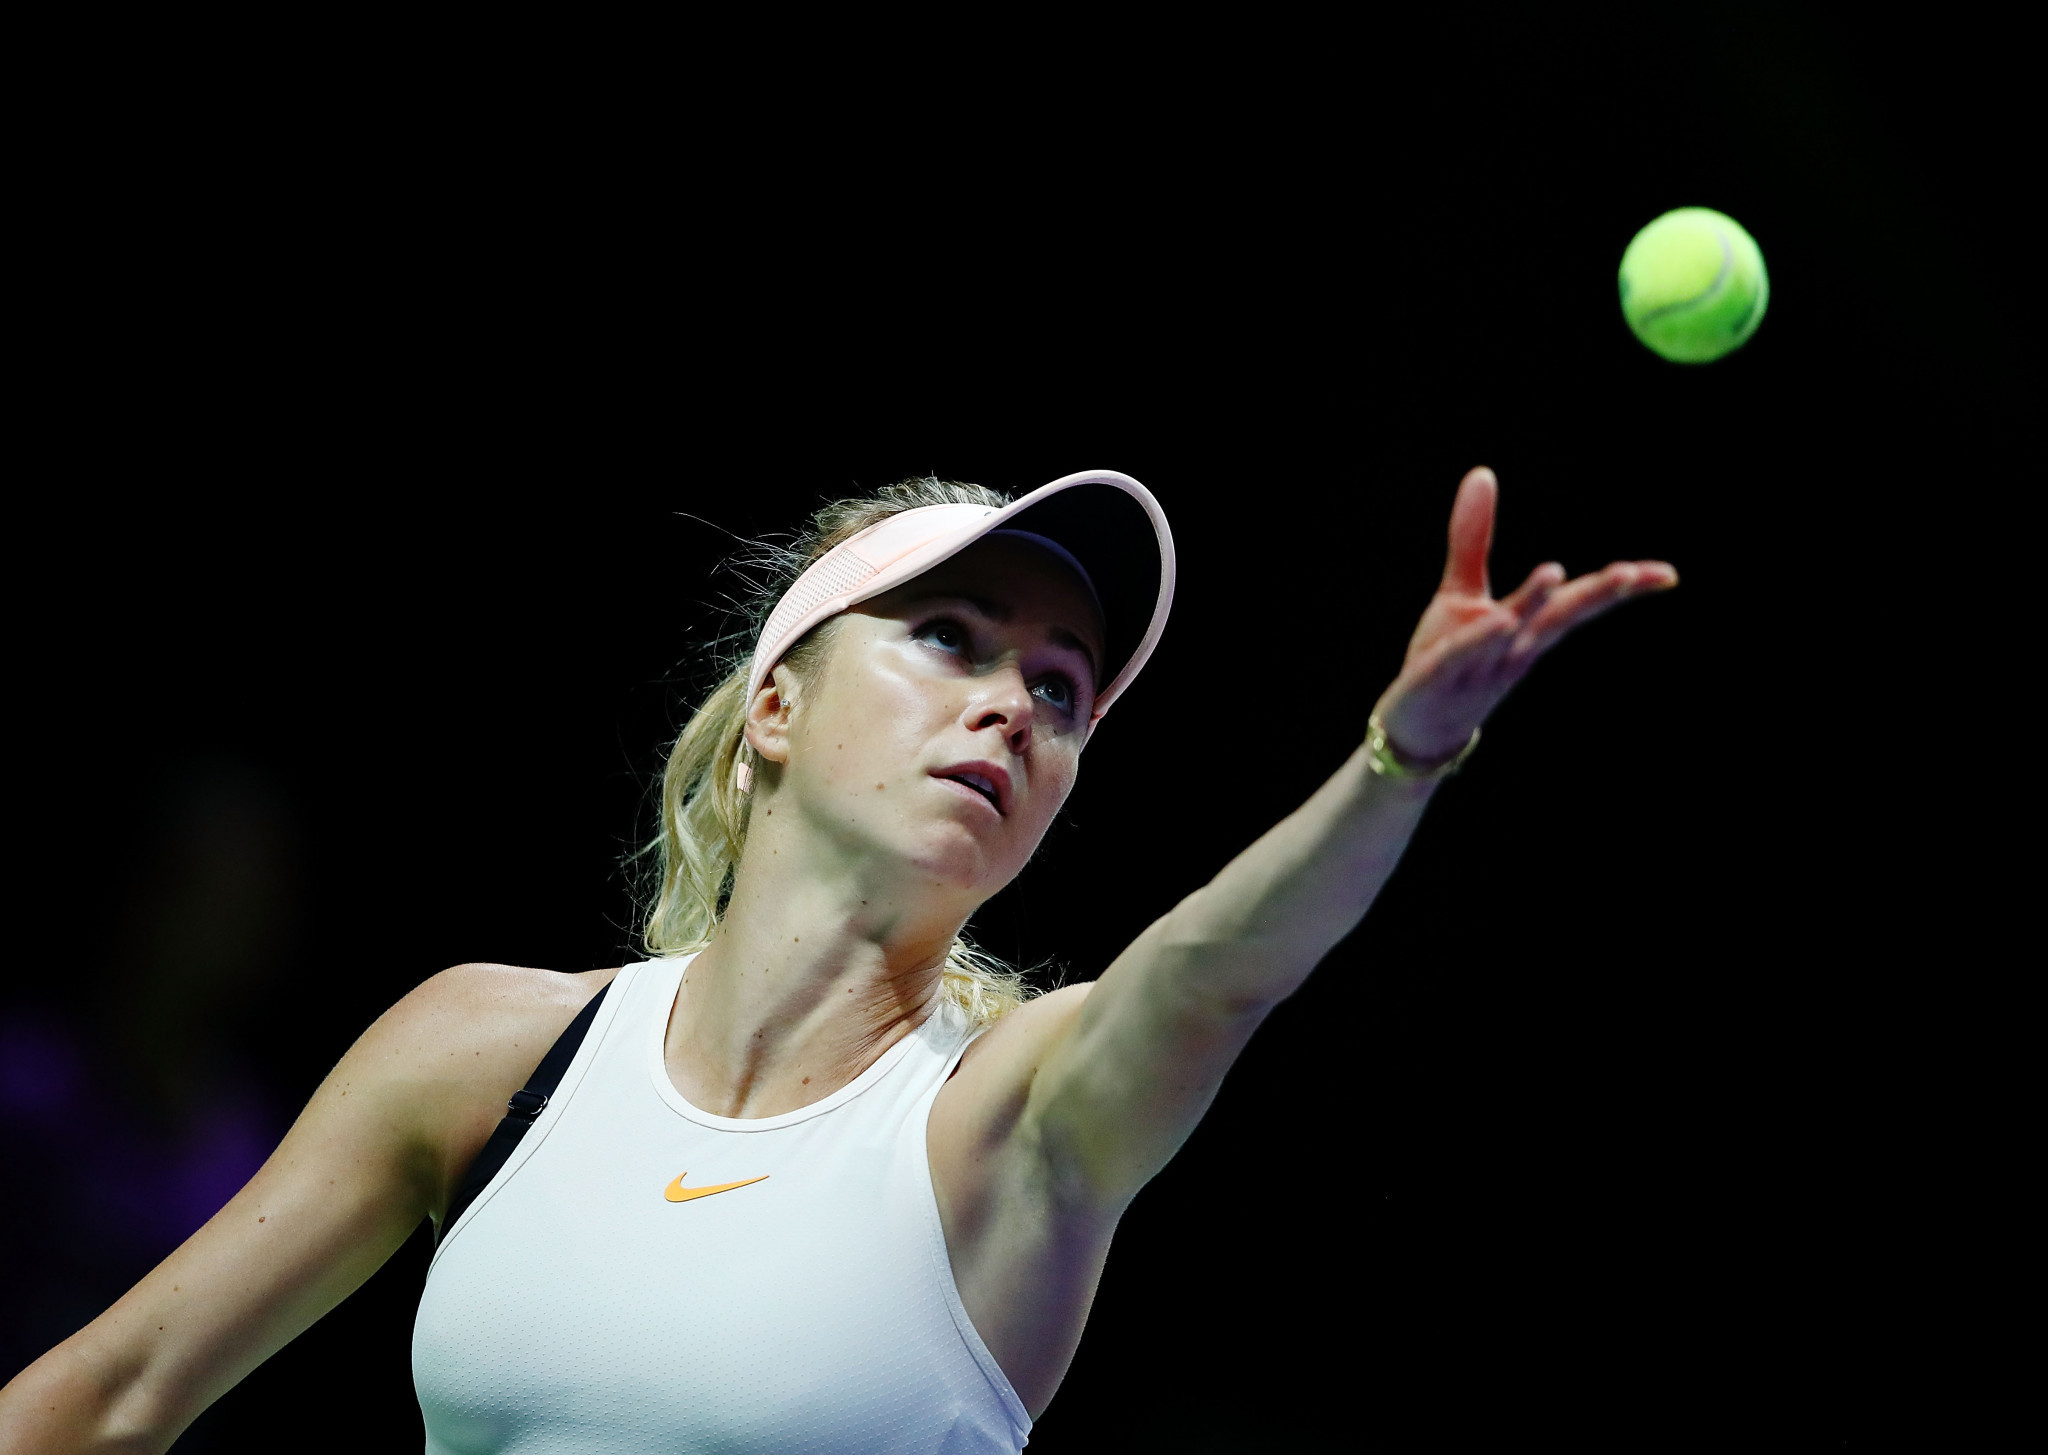 Plíšková and Svitolina win opening games of WTA Finals